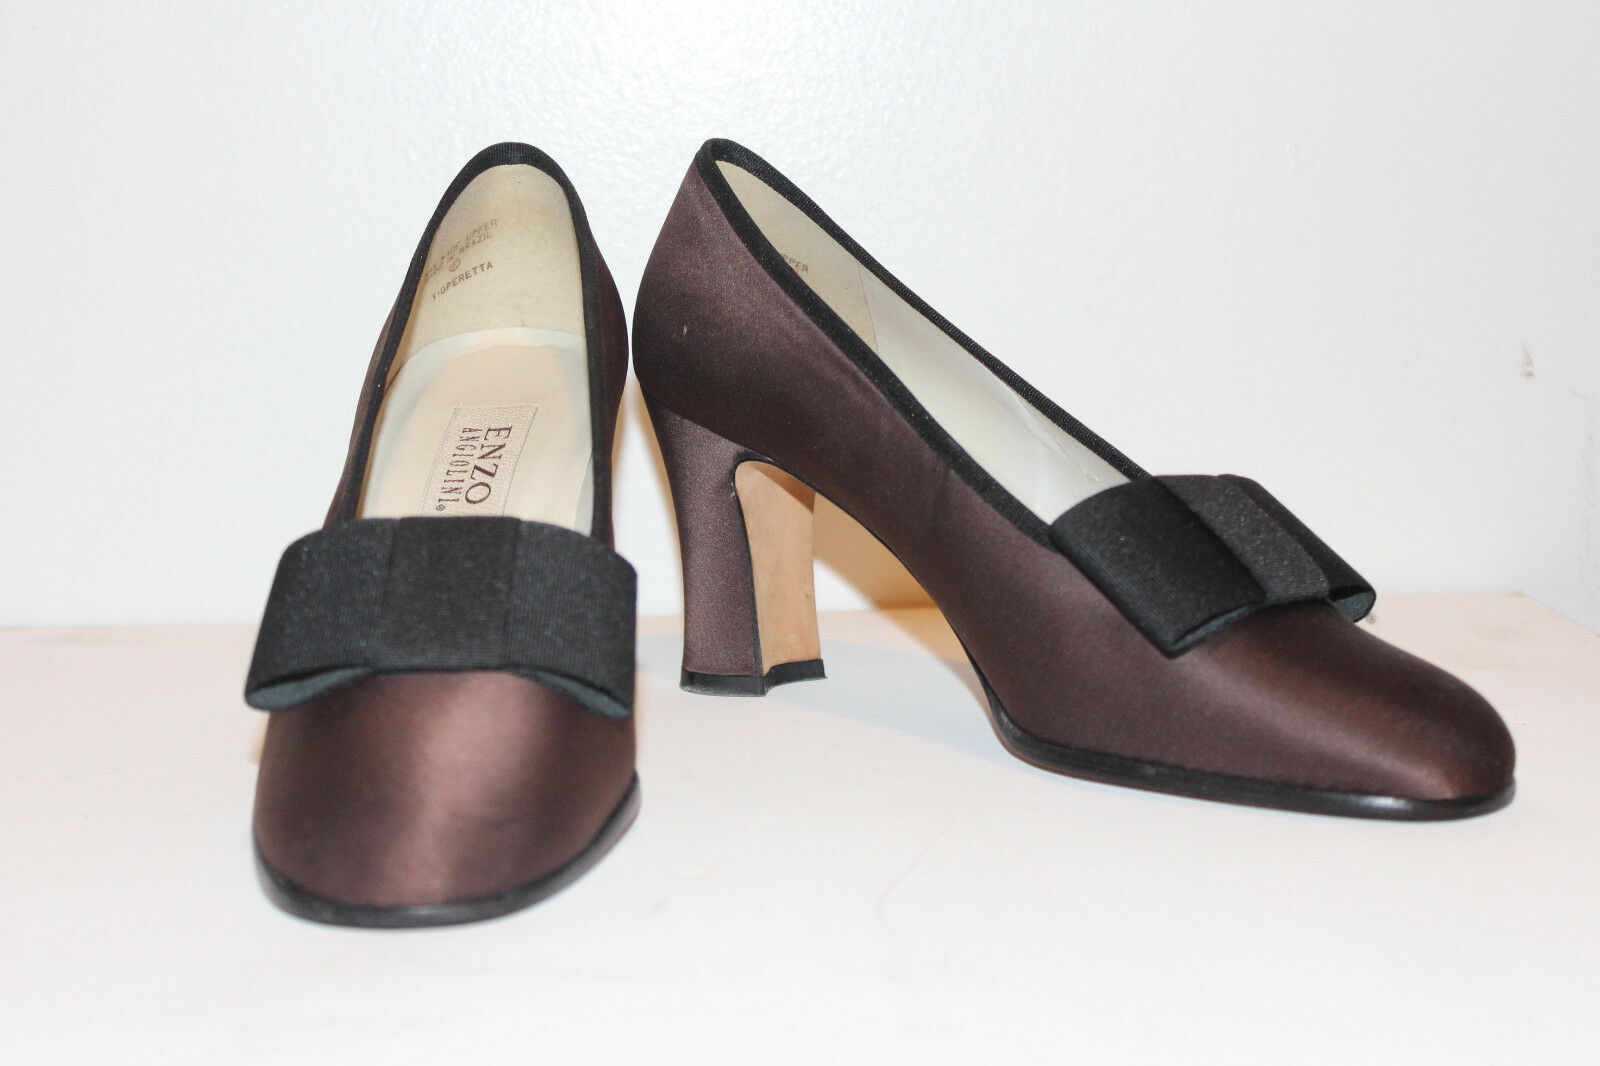 NEW Enzo Angiolini Copper Copper Copper Brown Satin Slipper Heel Black Bow size 9B Medium bfce01